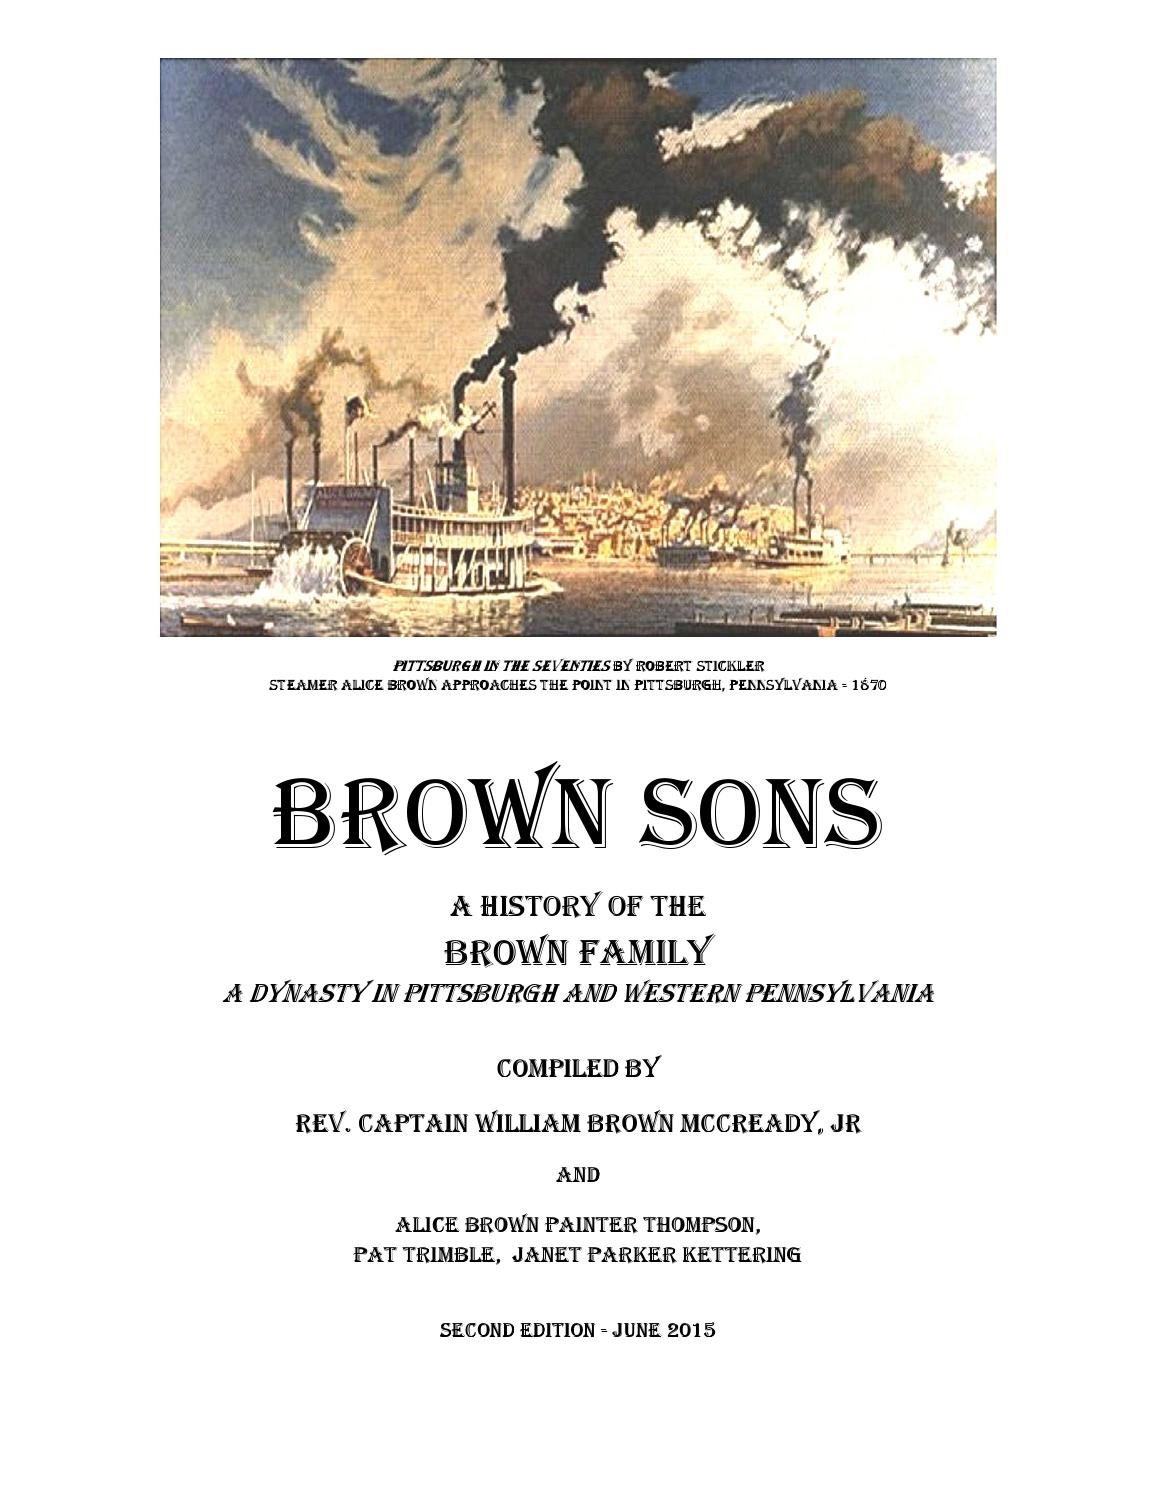 Brown sons text pdf by William Brown McCready - issuu